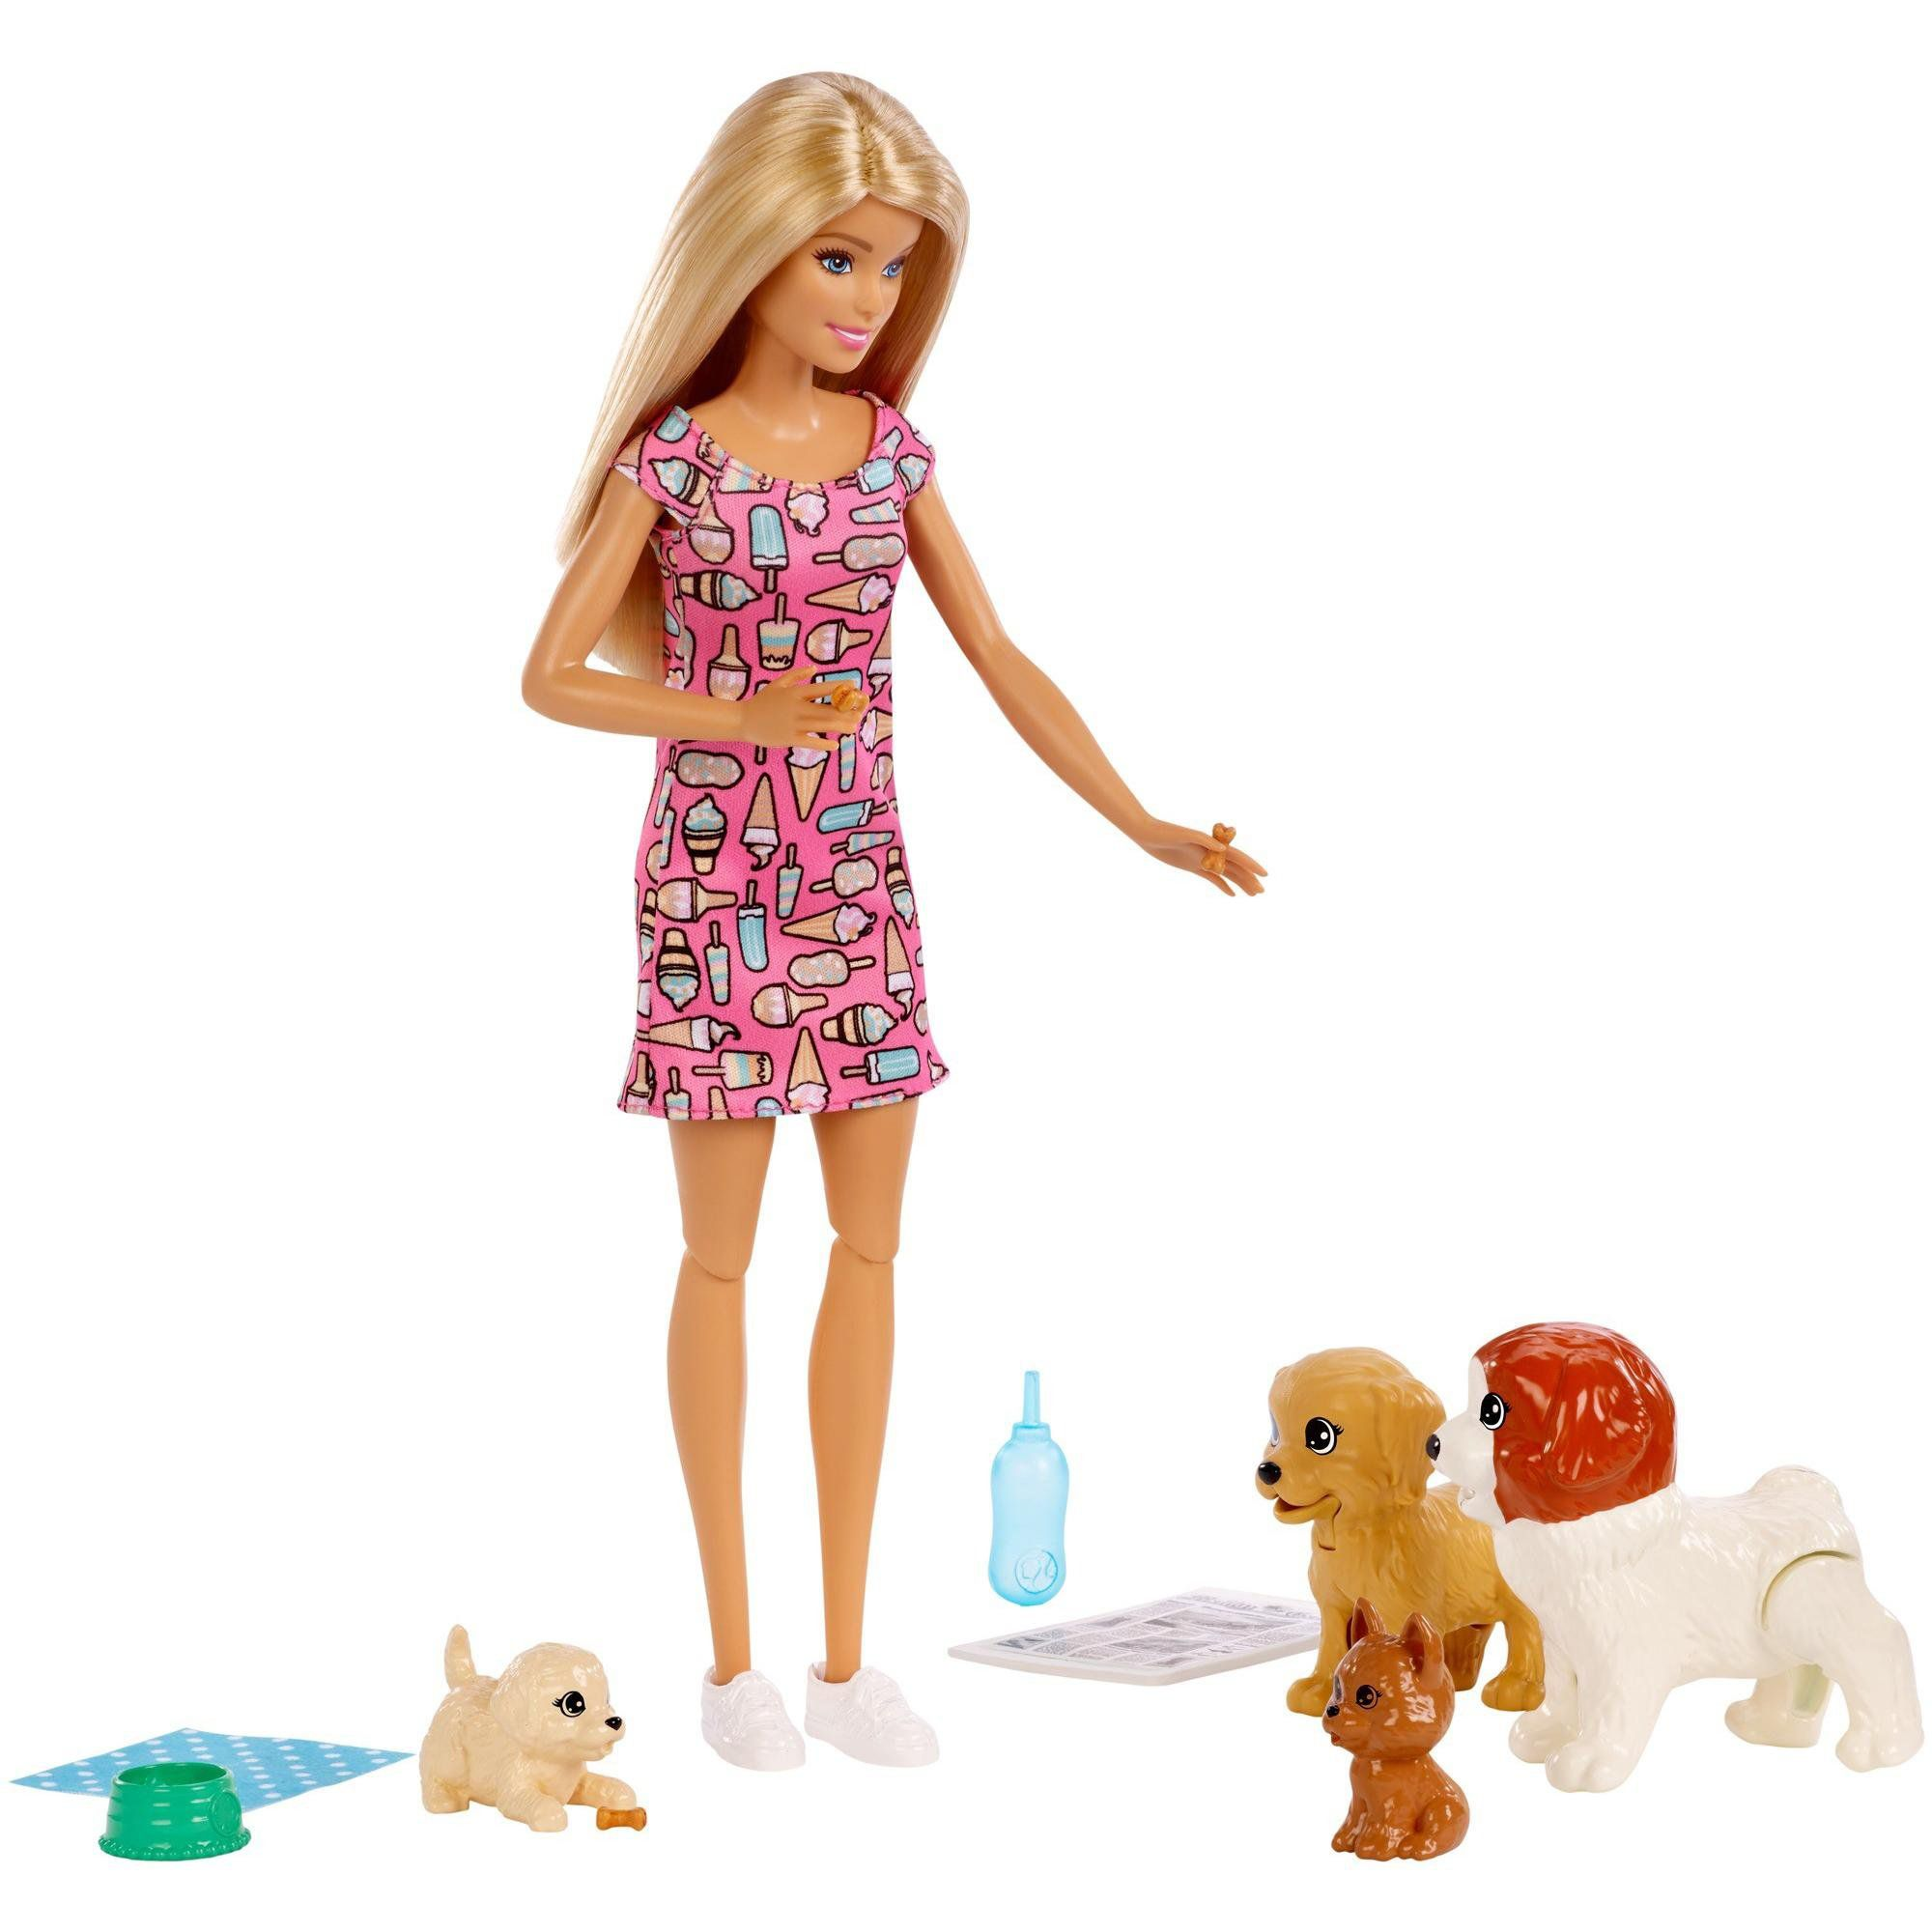 Boneca Barbie Doggy Daycare - Mattel